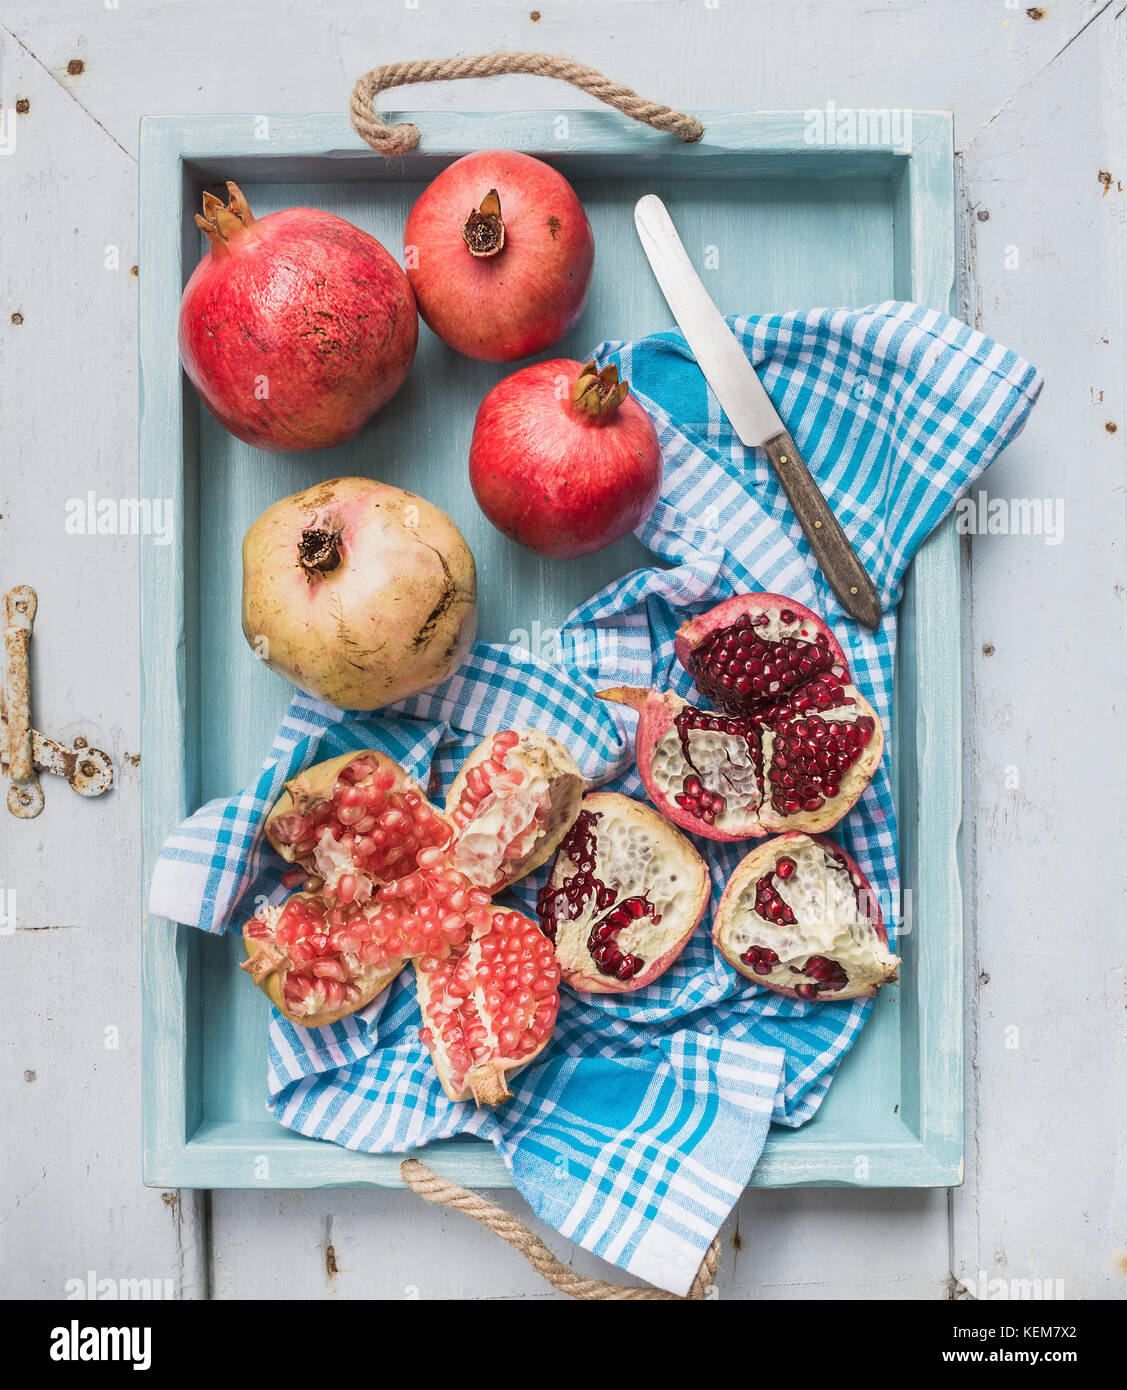 Red and white pomegranates with knife on kitchen towel in blue tray over light painted wooden backdrop Stock Photo